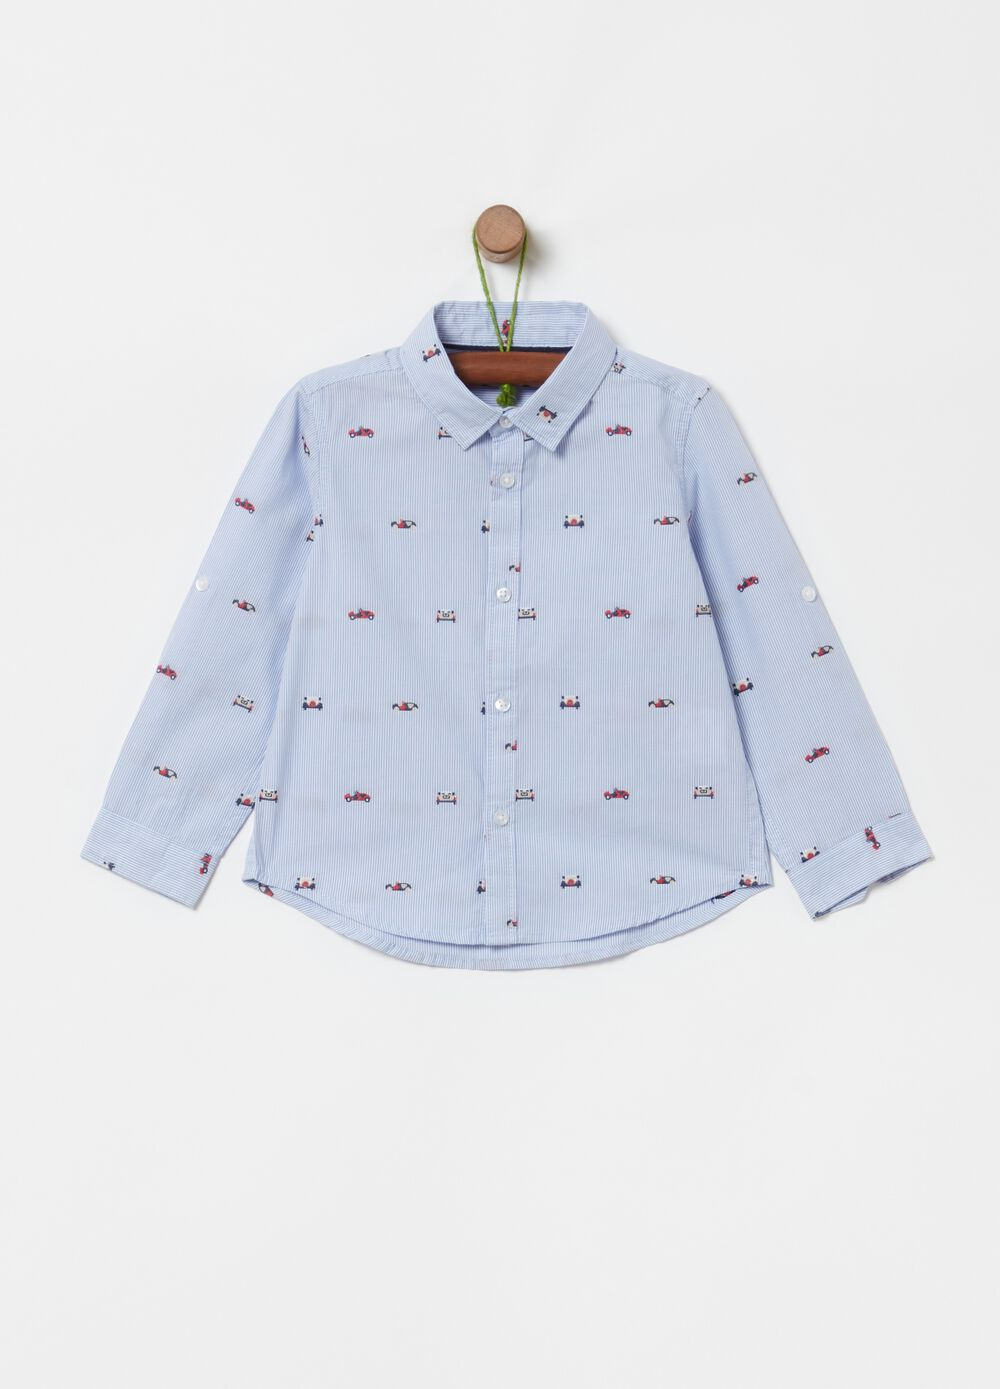 100% organic cotton shirt with all-over embroidery